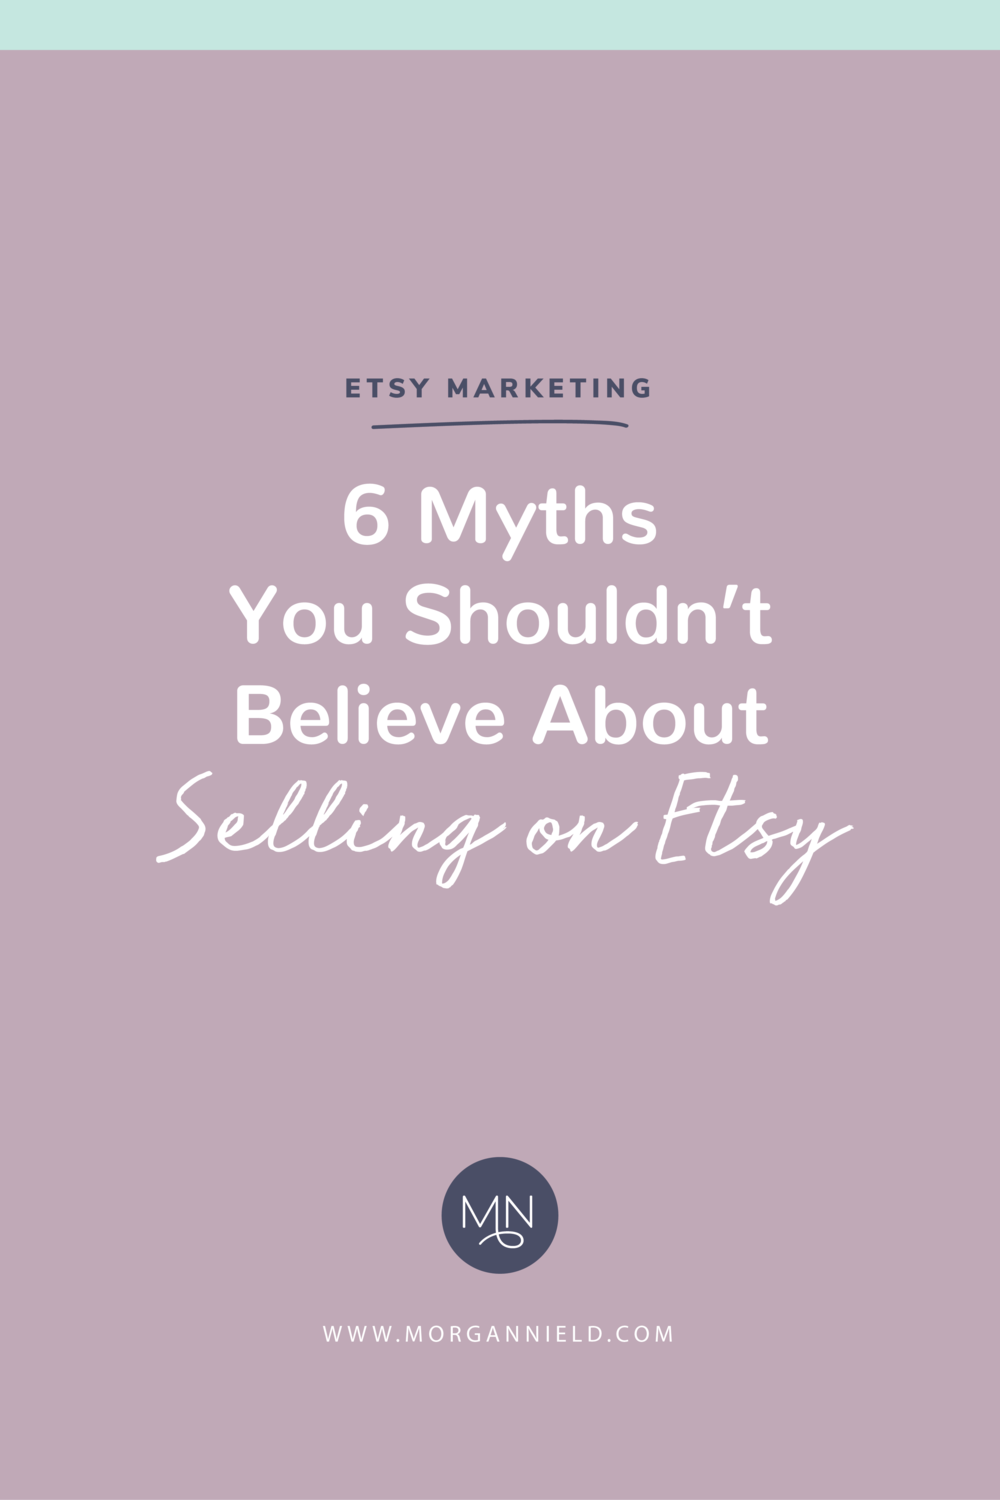 [B]_6_myths_you_shouldn_t_believe_about_selling_on_etsy-01.png